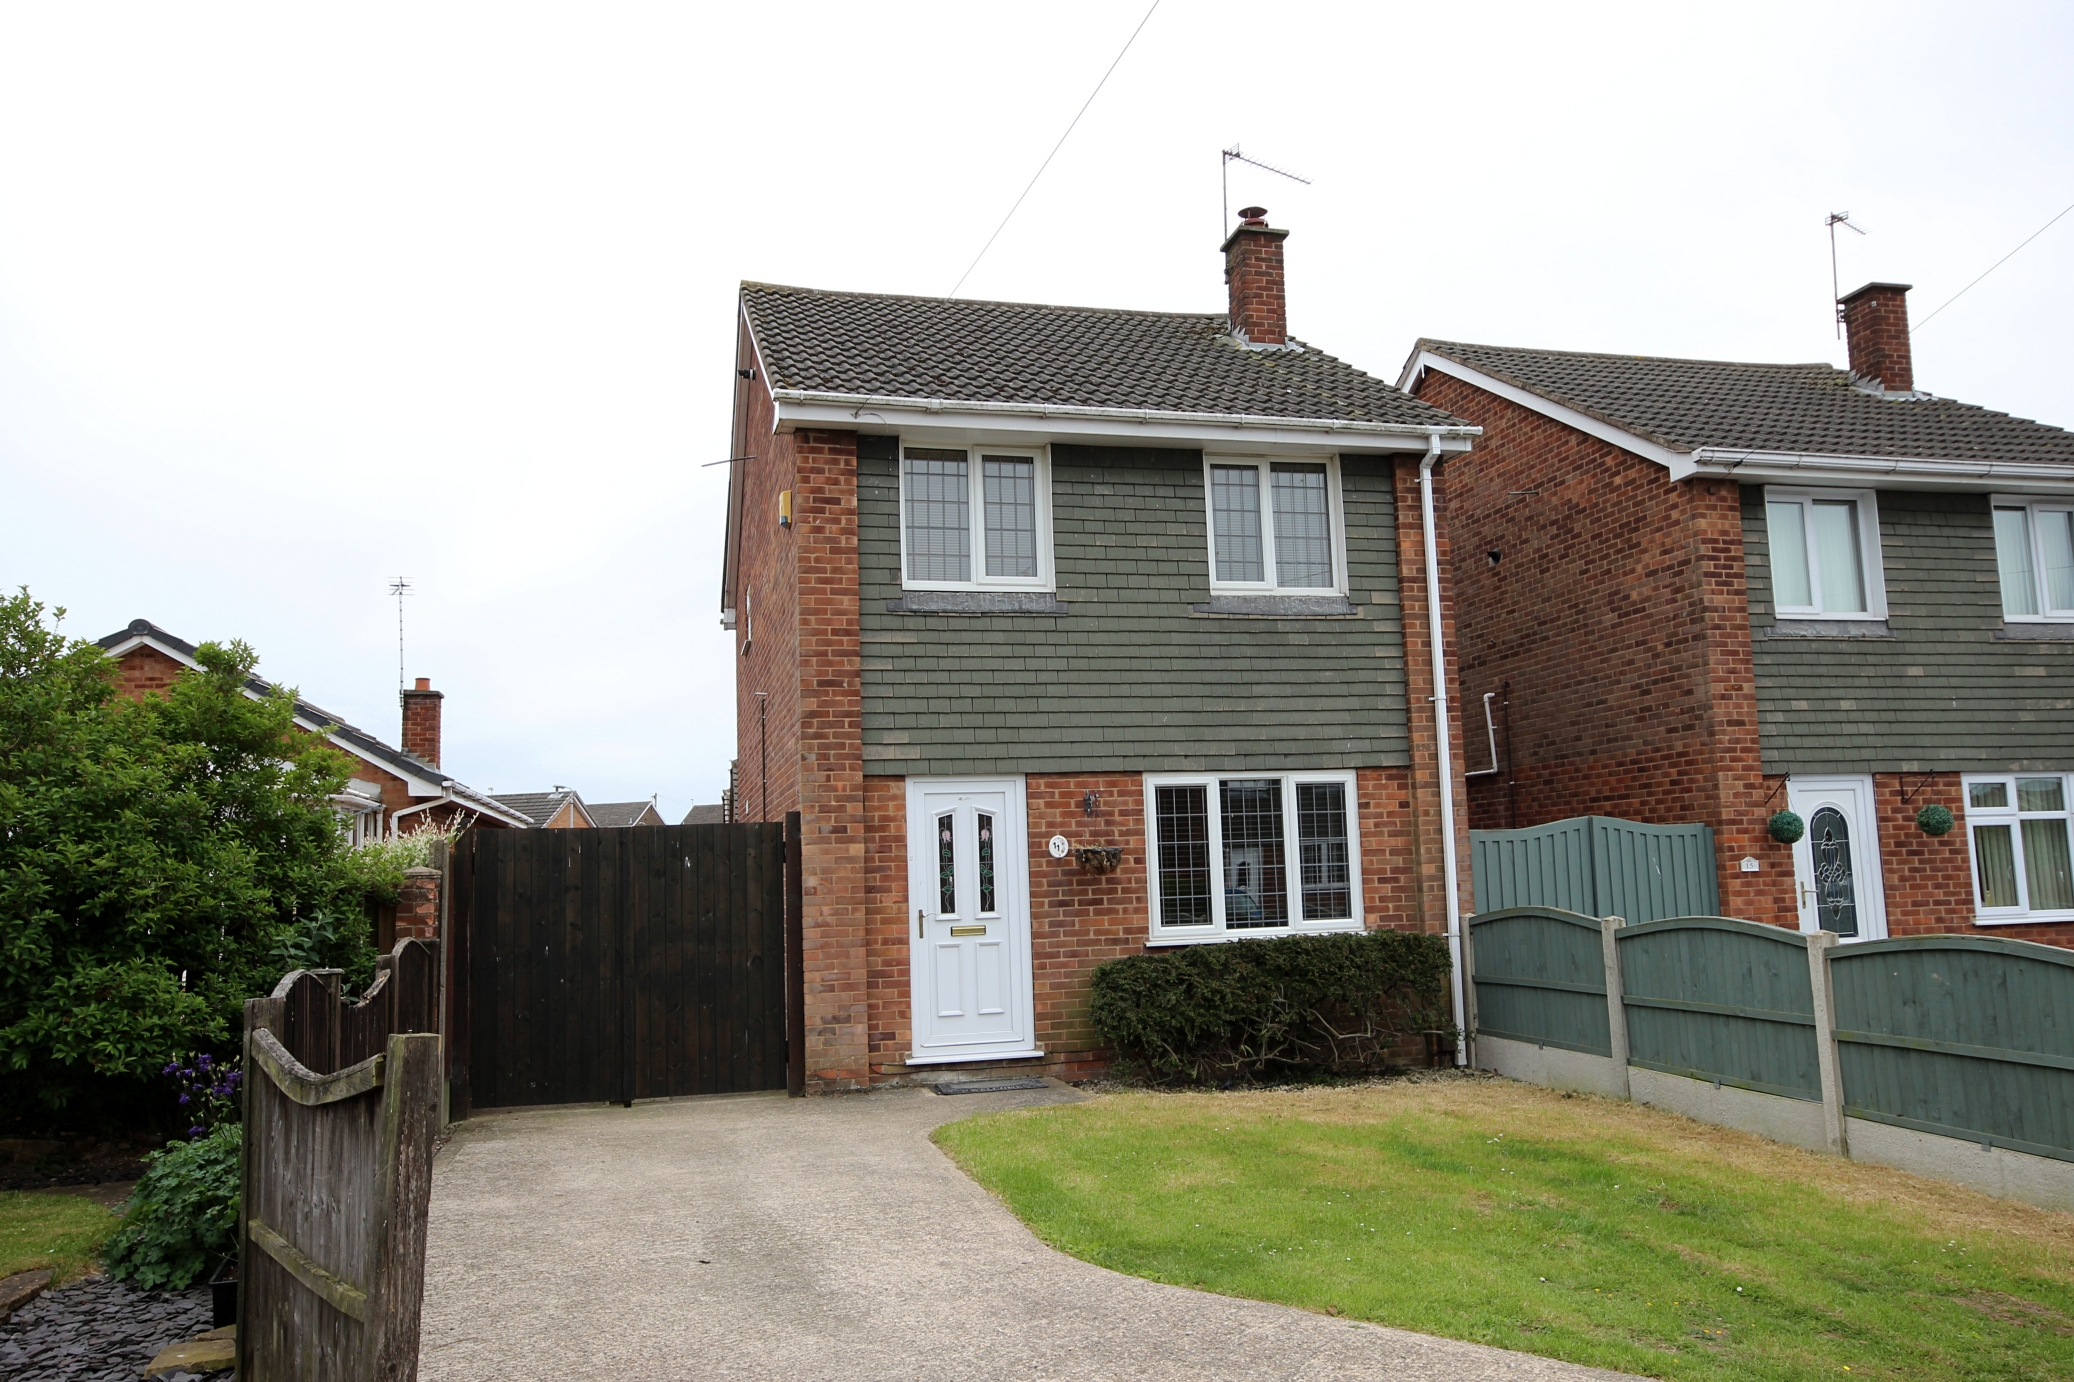 £176,950 Newstead Close, Selston, Nottinghamshire, NG16 6RL - 3 BEDROOM DETACHEDWell presented detached three bedroom home with dining kitchen, lounge and large conservatory. Off road parking for two cars in a quiet cul-de-sac ideal family home - no upward chain. EPC rating C